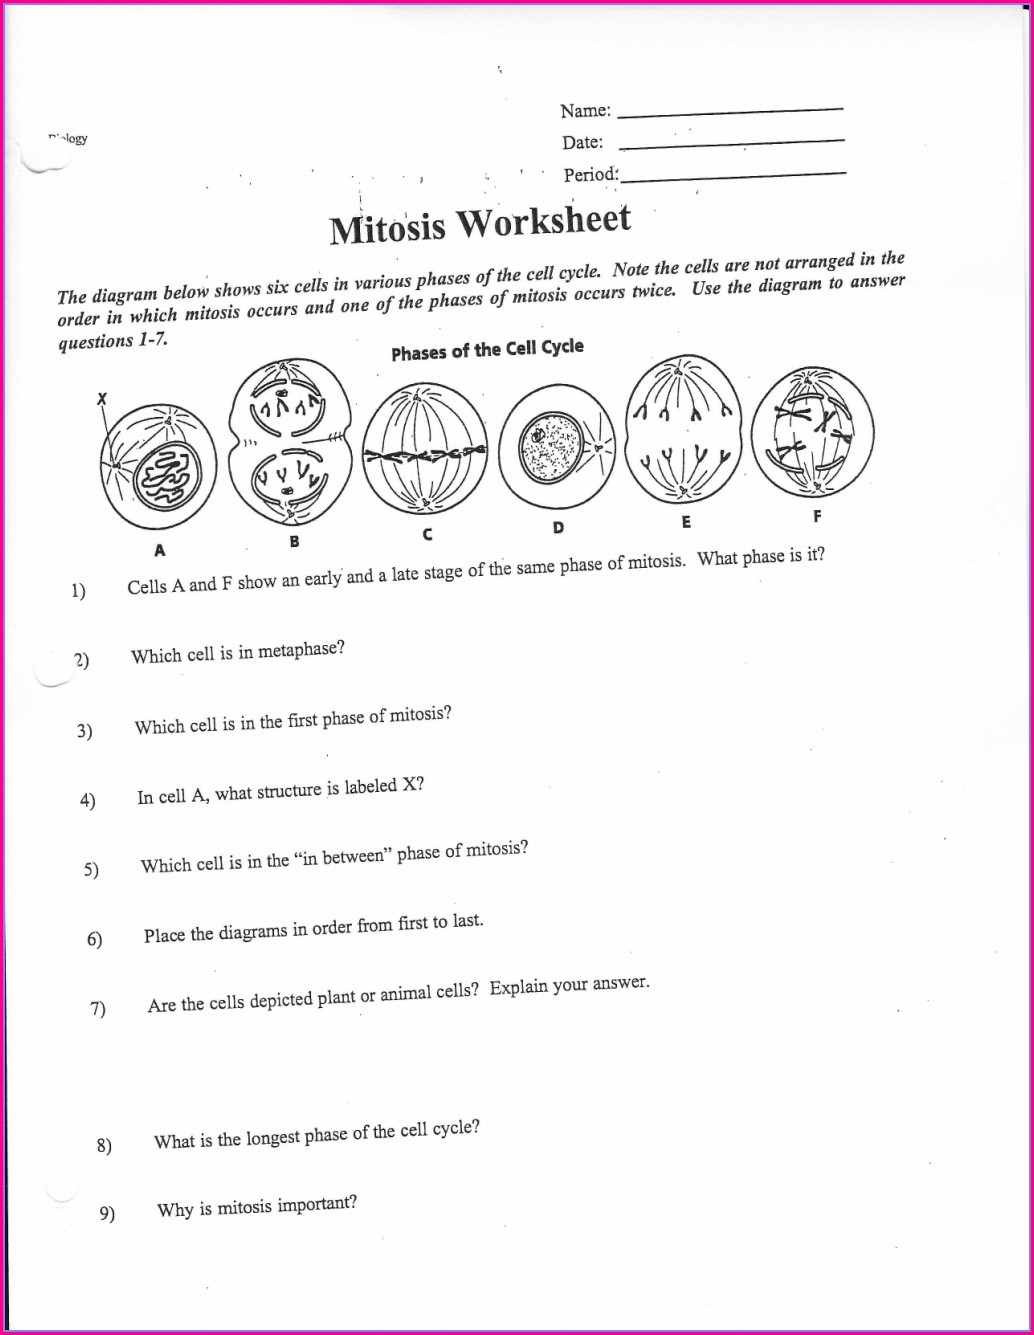 Middle School Mitosis Worksheet Answers Key